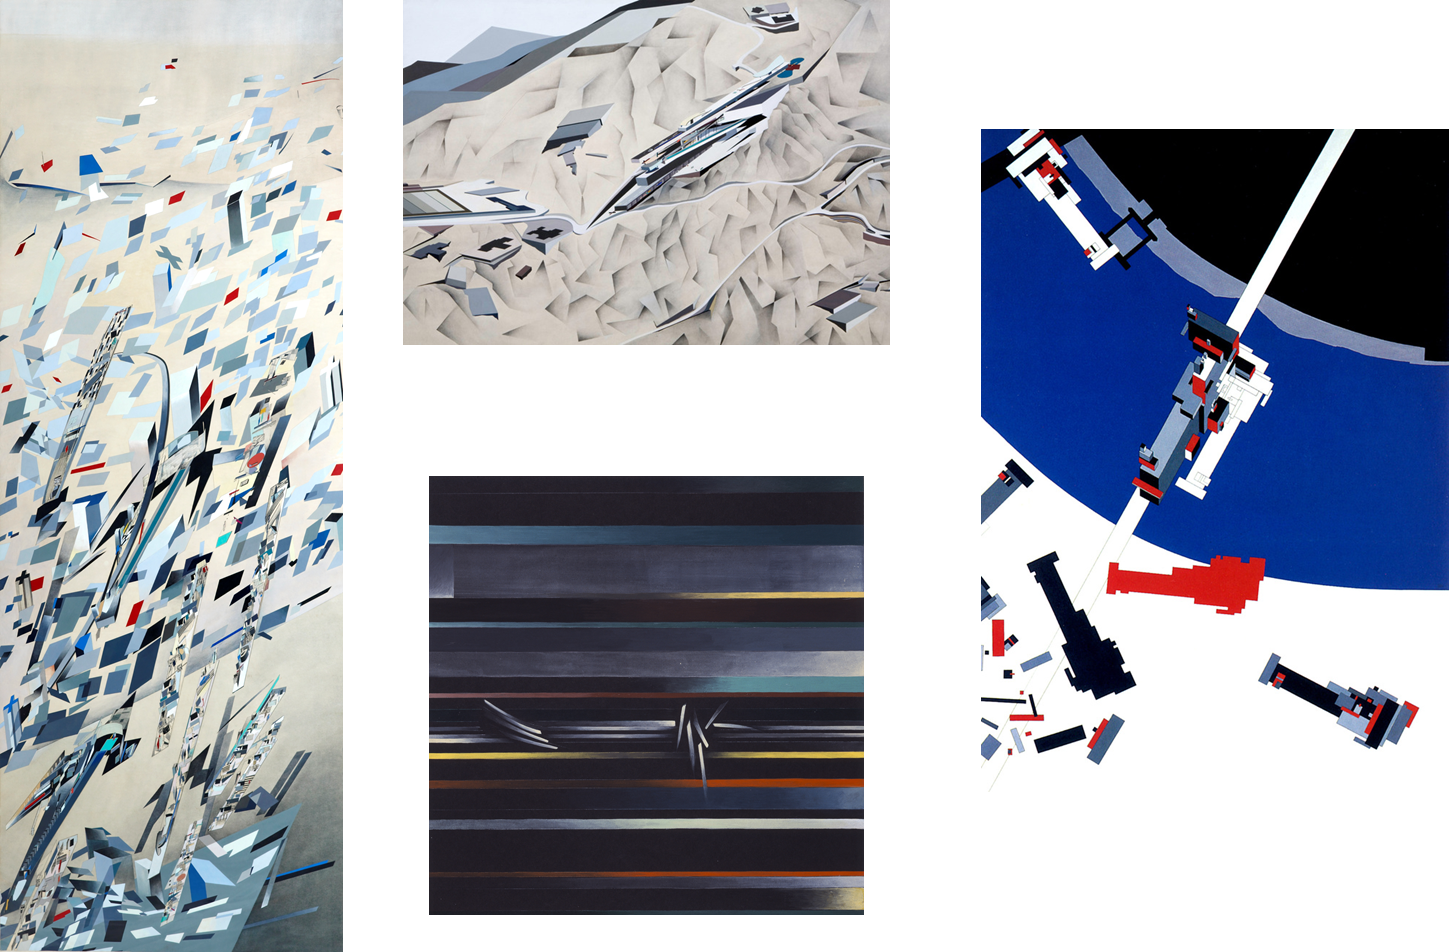 Left to Right:   Confetti 'The Peak', Hong Kong, China 1982/1983; The Peak Series, 1983; Hafenstrasse Development; Hafenstrasse Development, Hamburg, Germany, 1989; Malevich's Tektonik, 1976-7  © Zaha Hadid Foundation